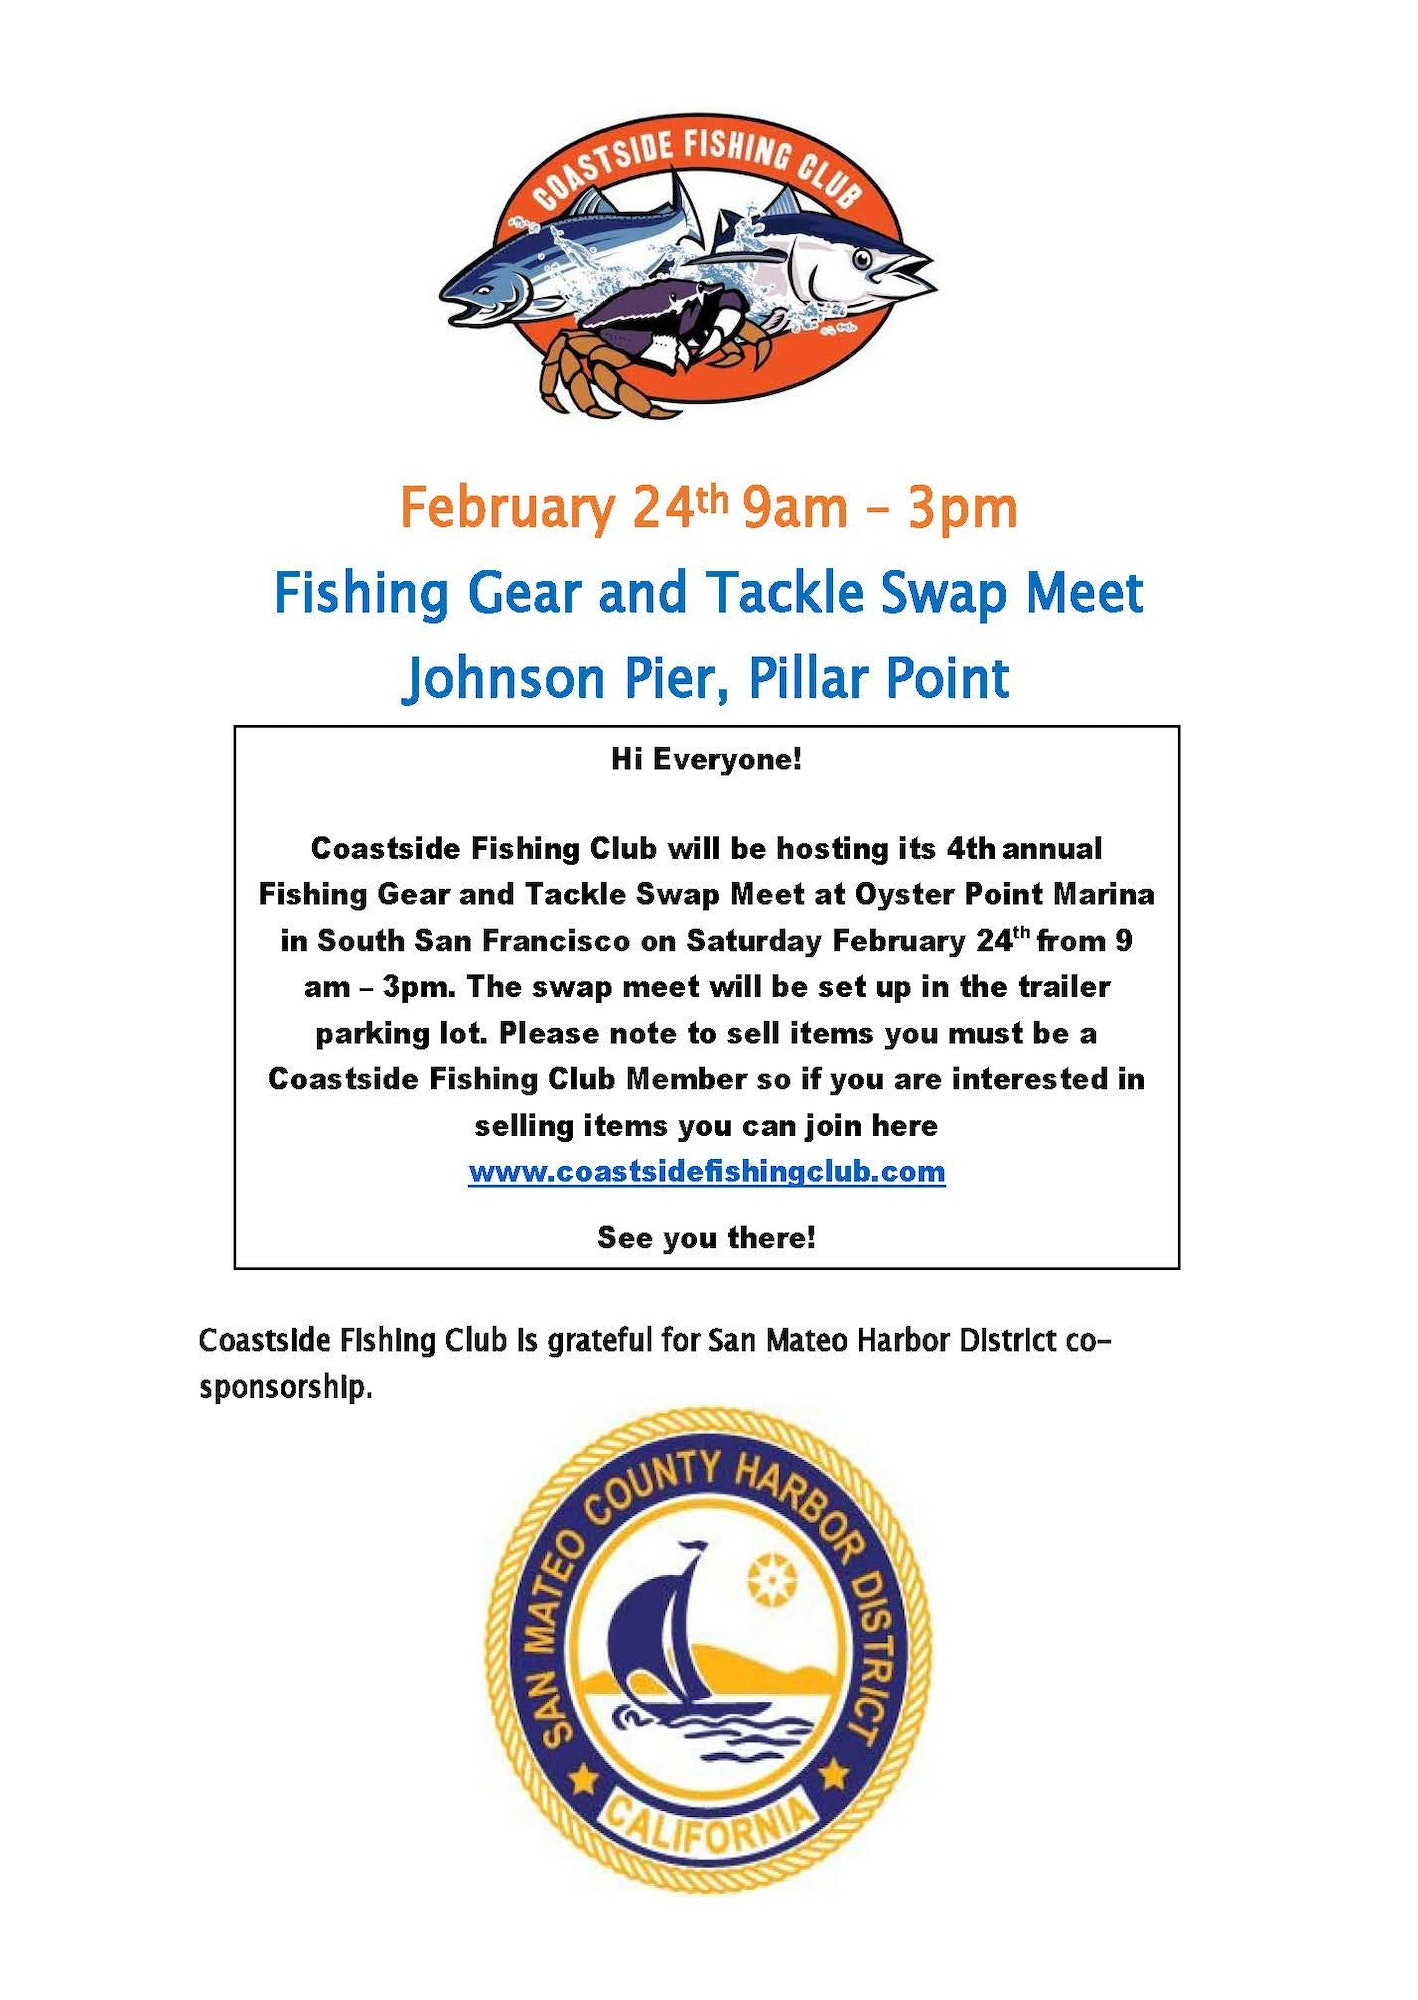 News and announcements san mateo county harbor district for Coastside fishing club